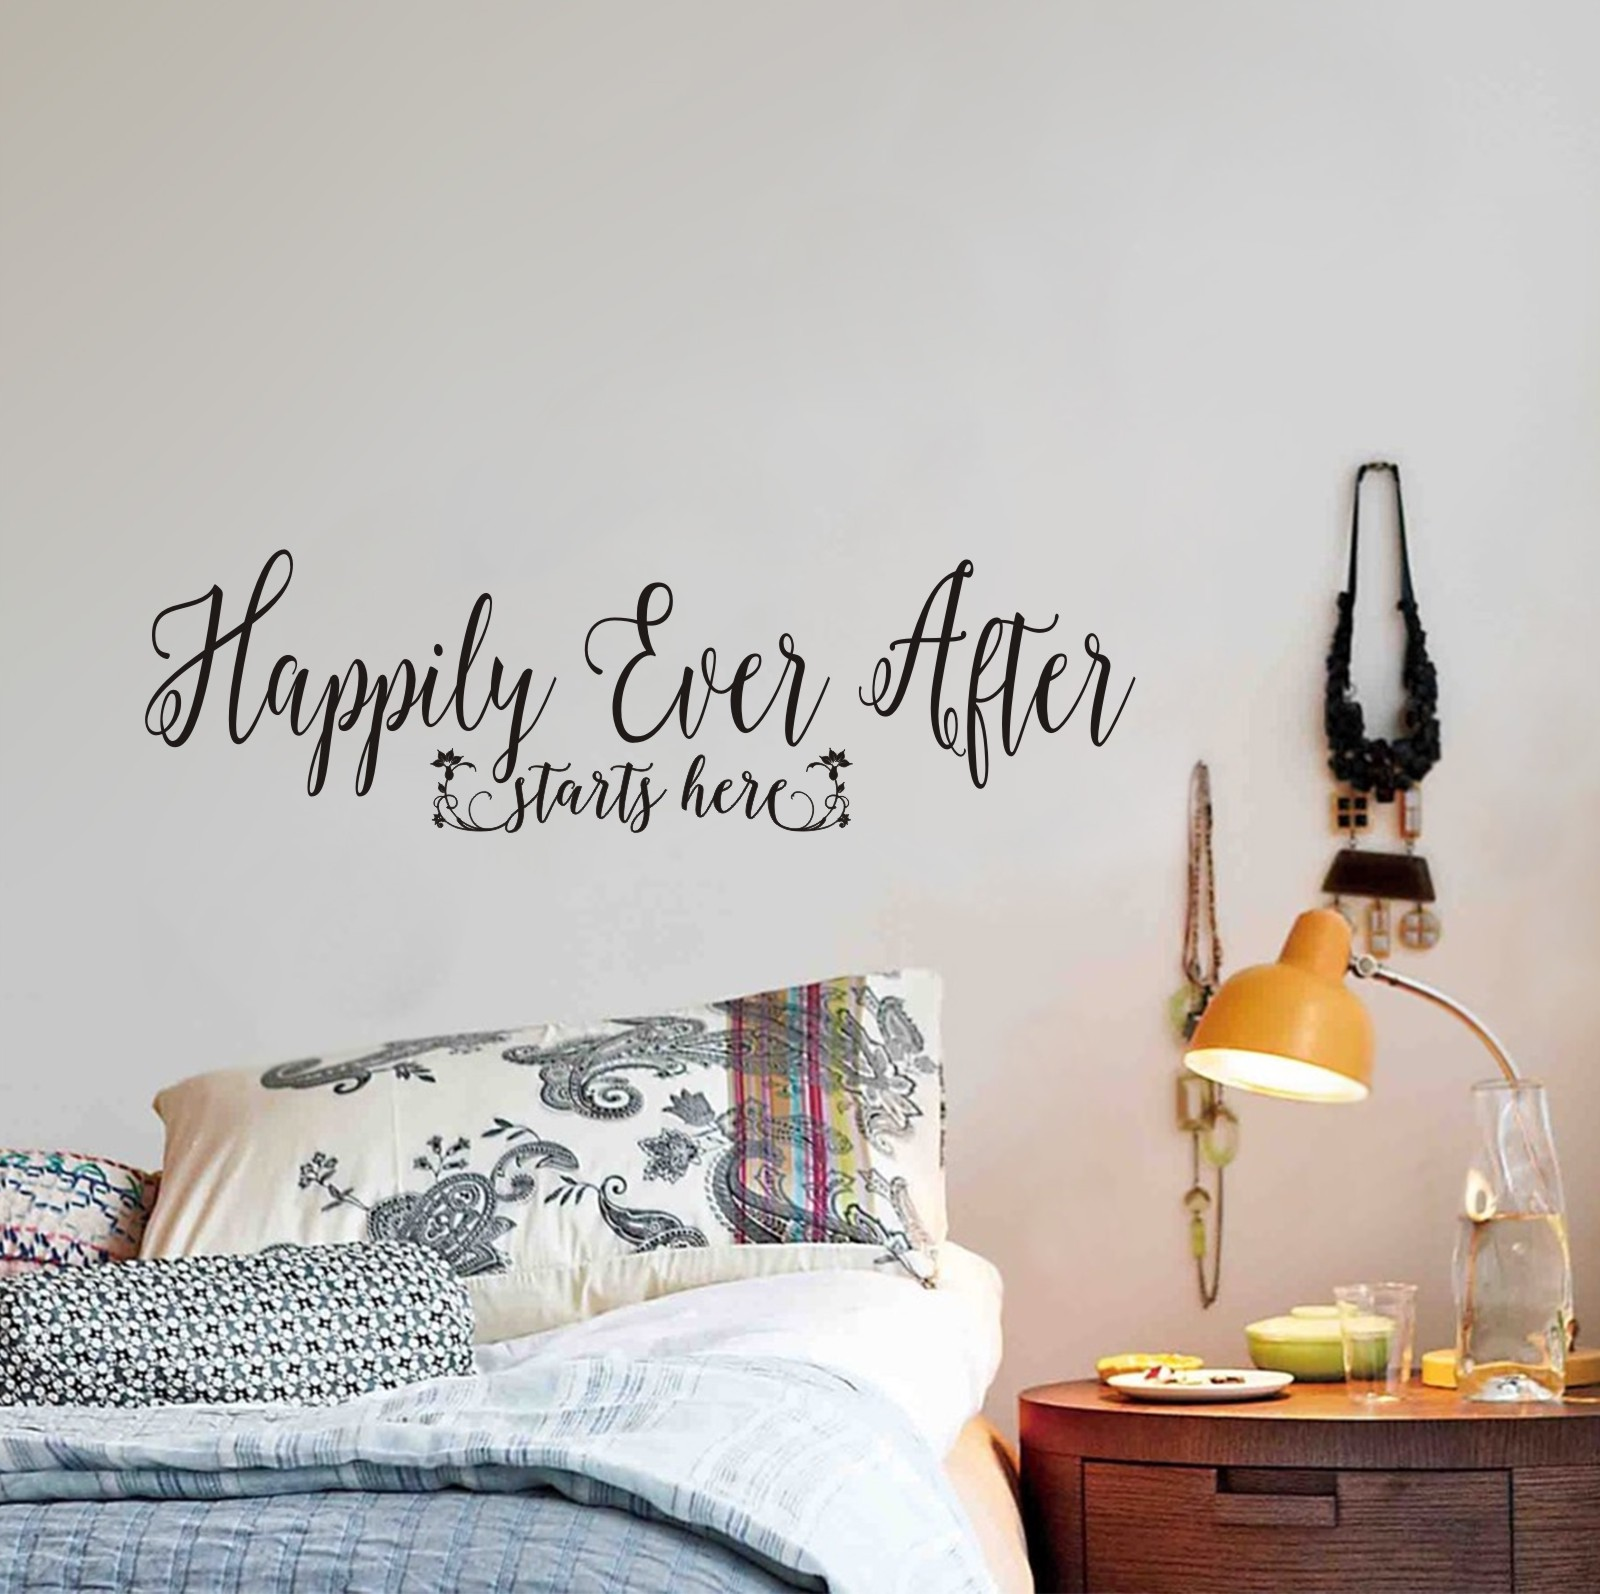 Happily Ever After Starts Here Wall Decal